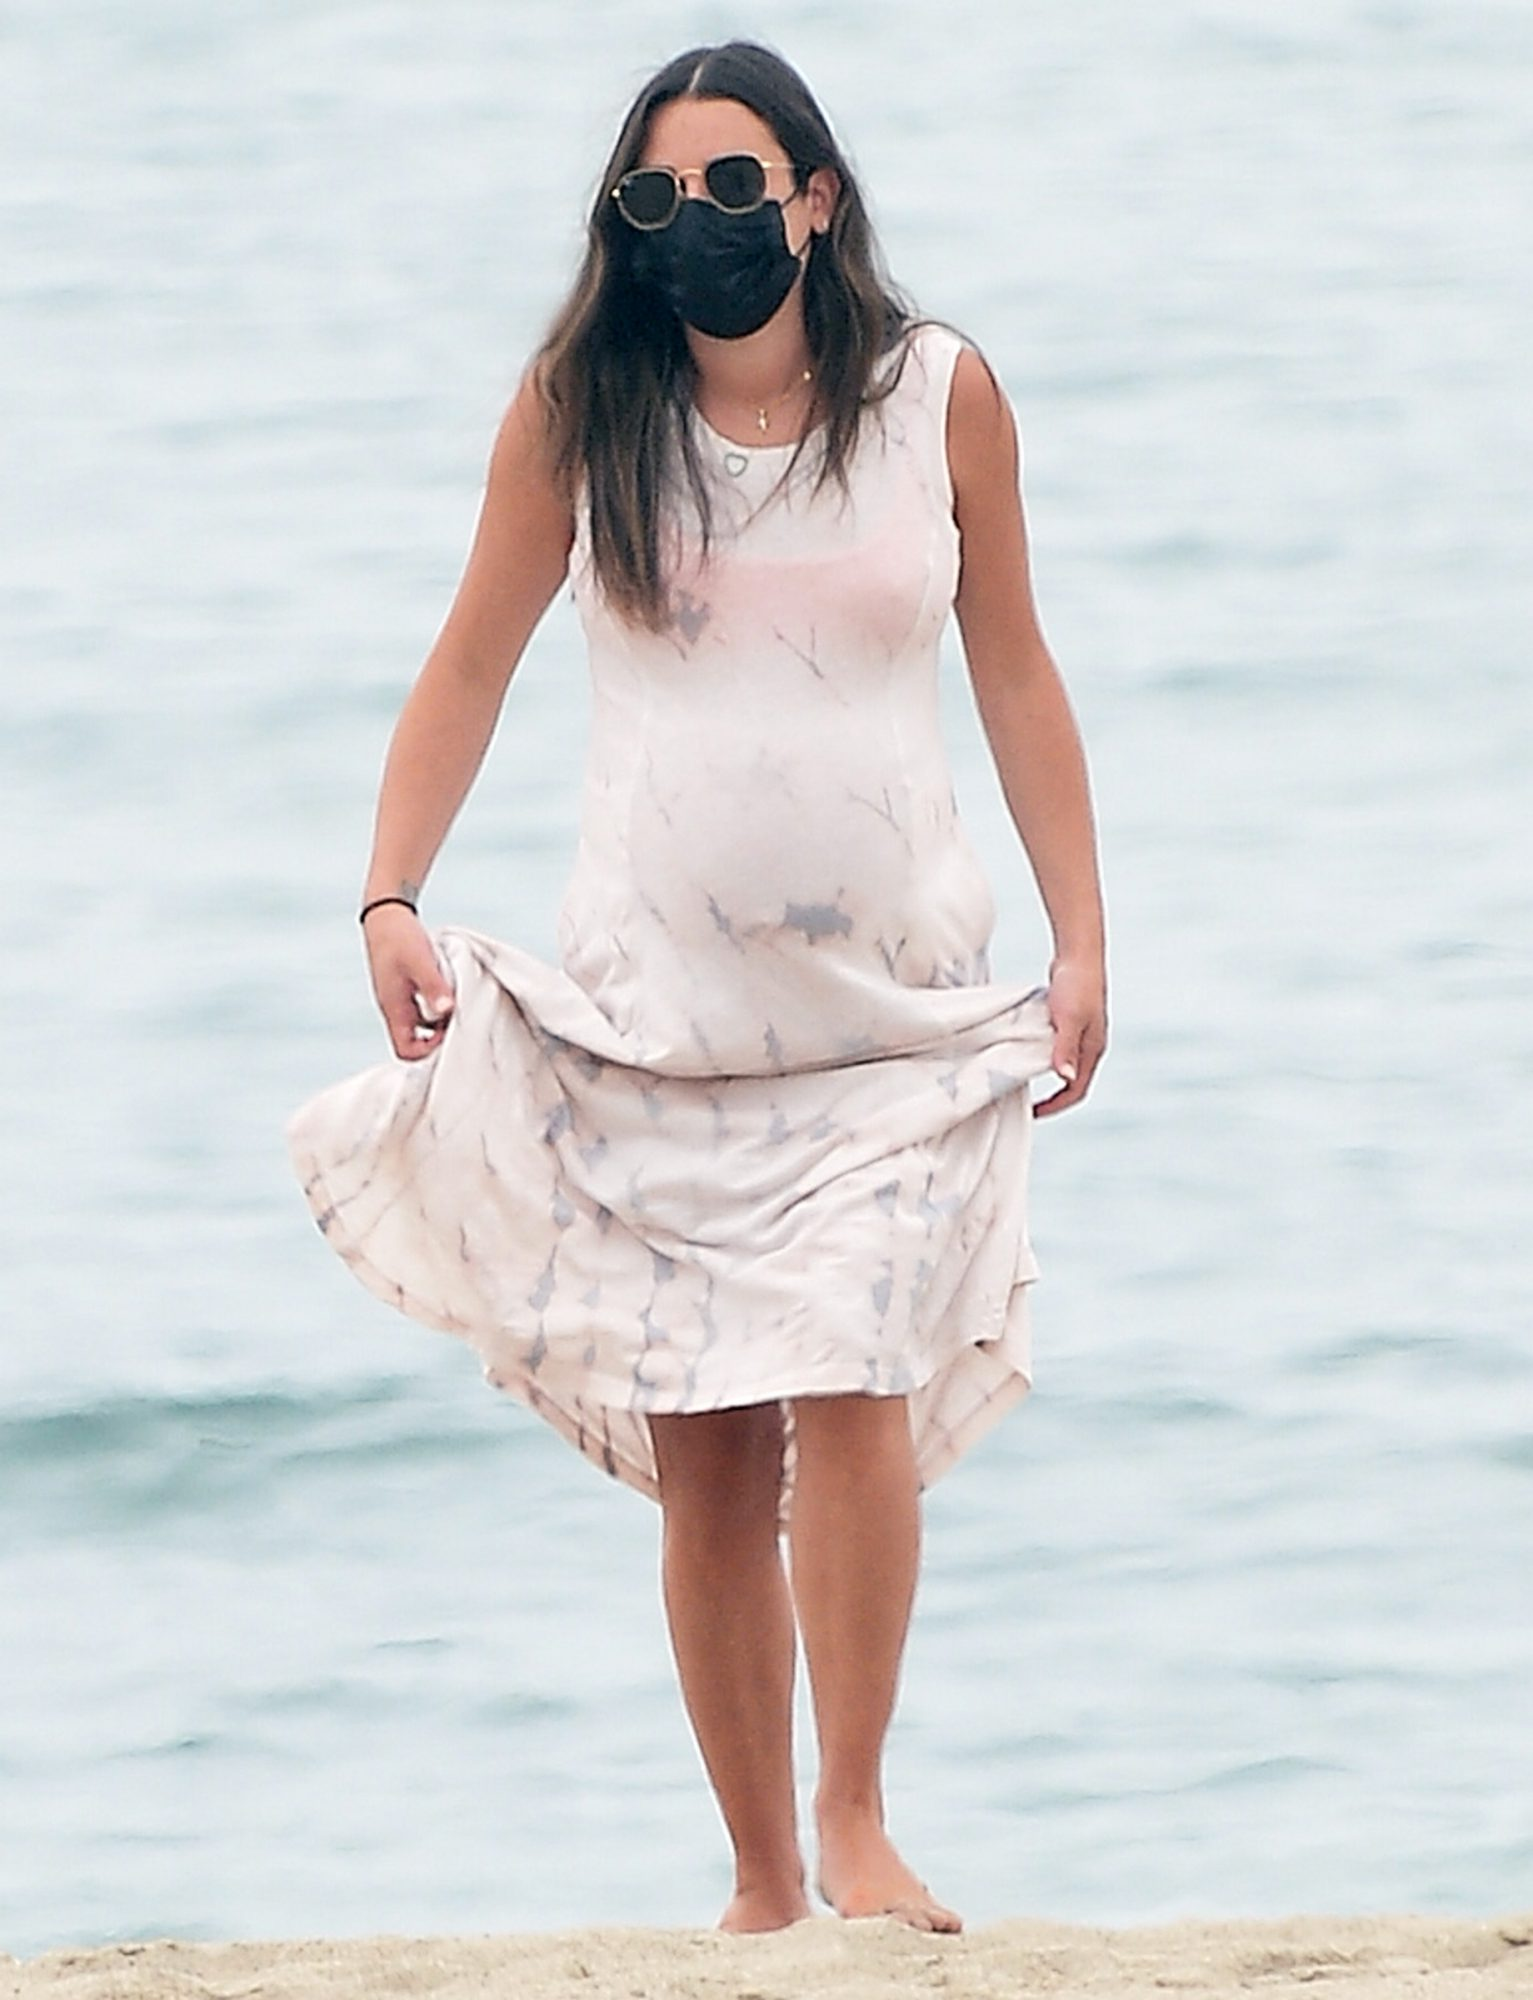 Lea Michele Cradles Her Growing Baby Bump on The Beach in Santa Monica, California.